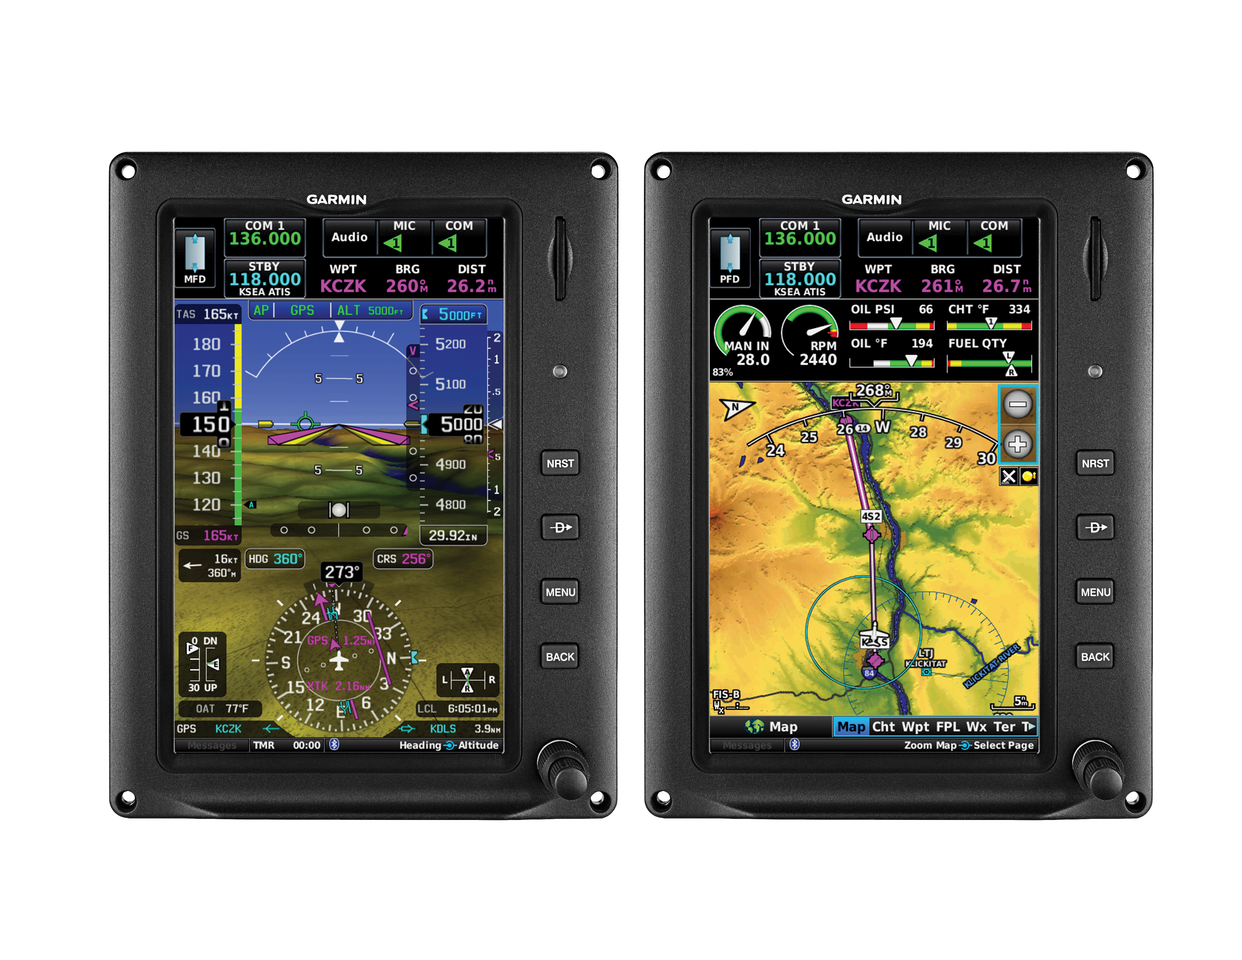 A portrait version of the Garmin G3 Touch seven-inch display will be available later in 2017 for Experimental and Light Sport aircraft.